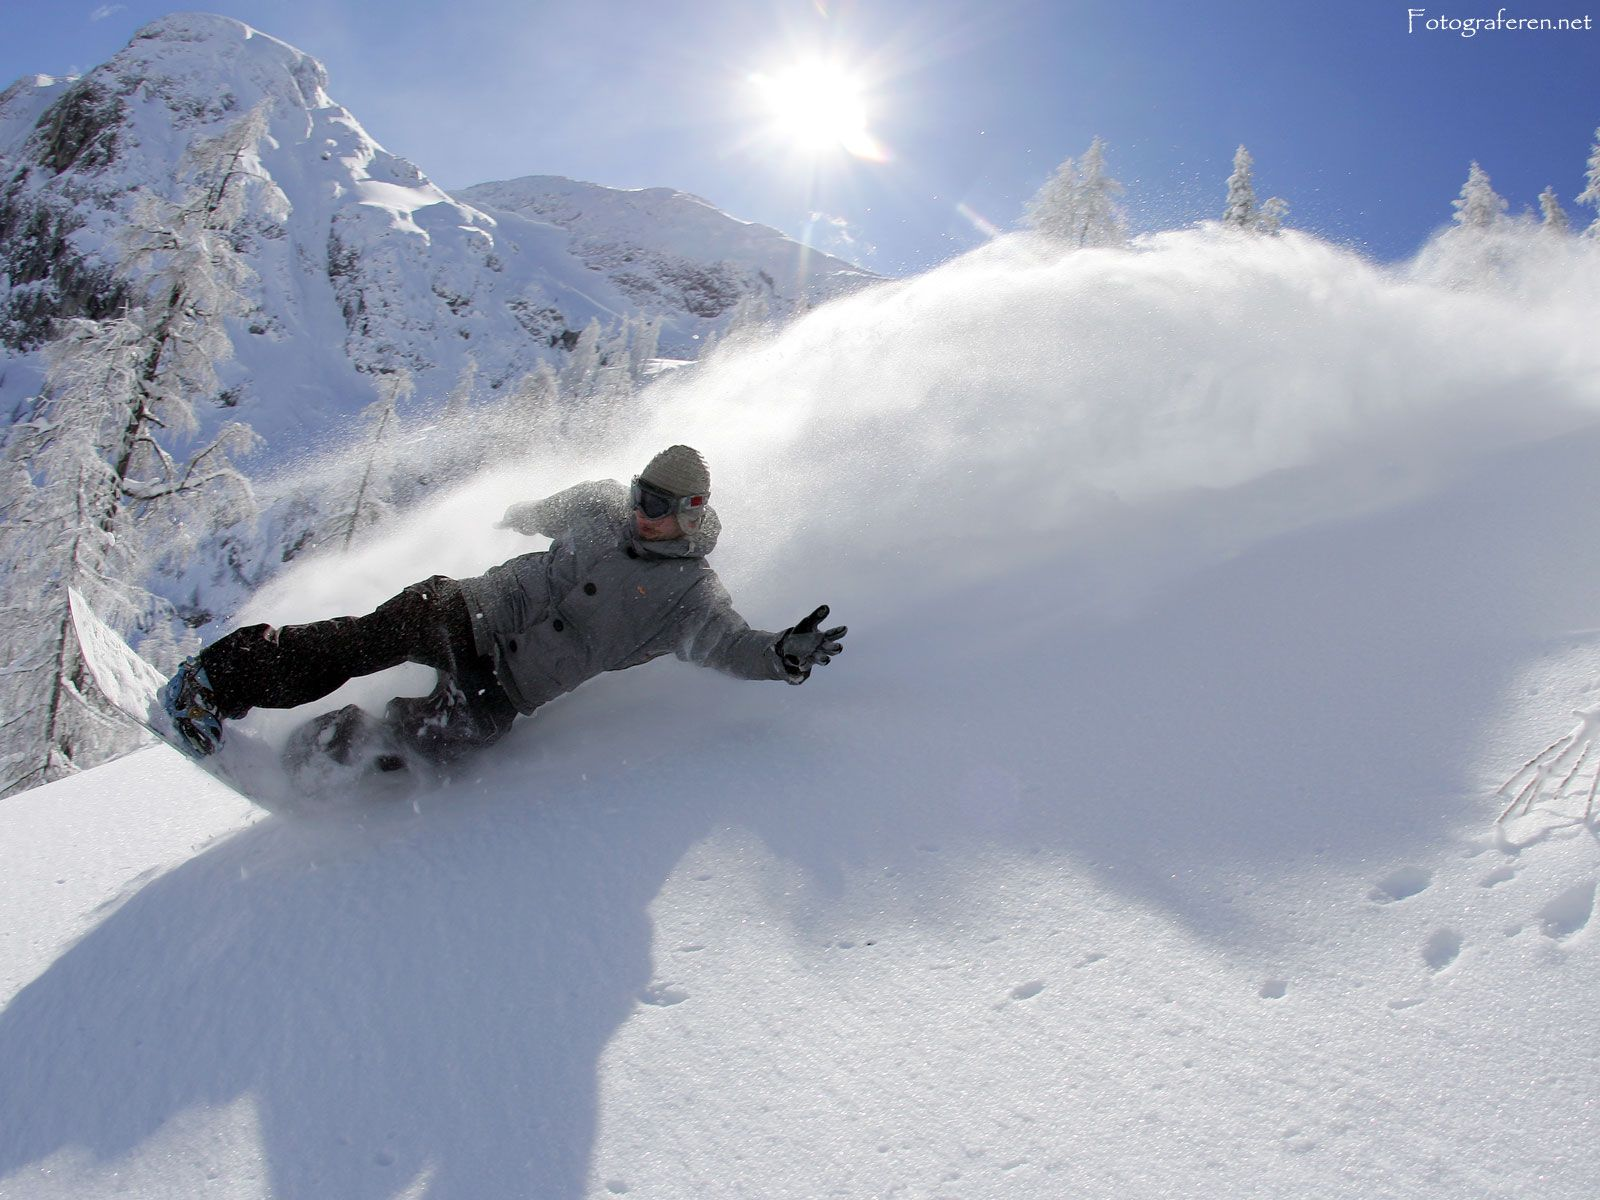 Snowboard Powder Snowboarding Check out my awesome blog